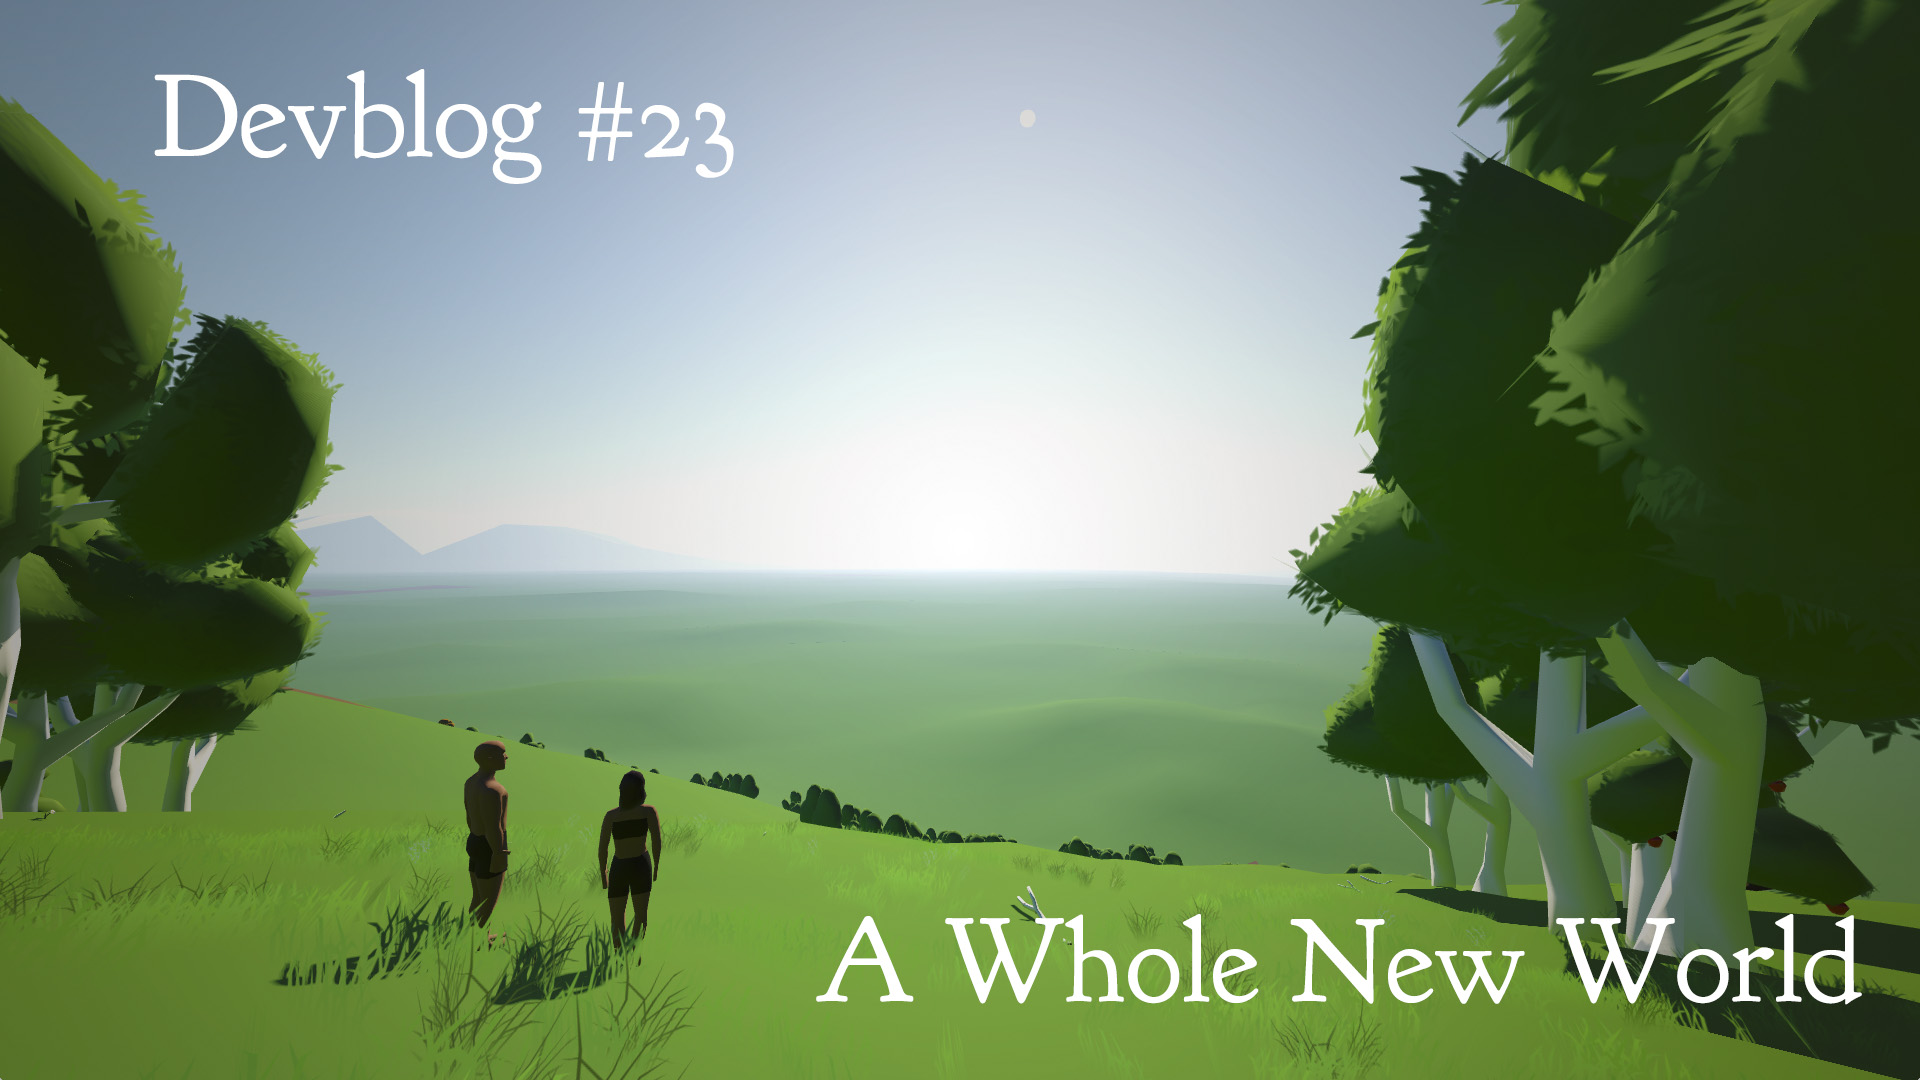 Video Devblog #23 - A whole new world (and a new name) feature image